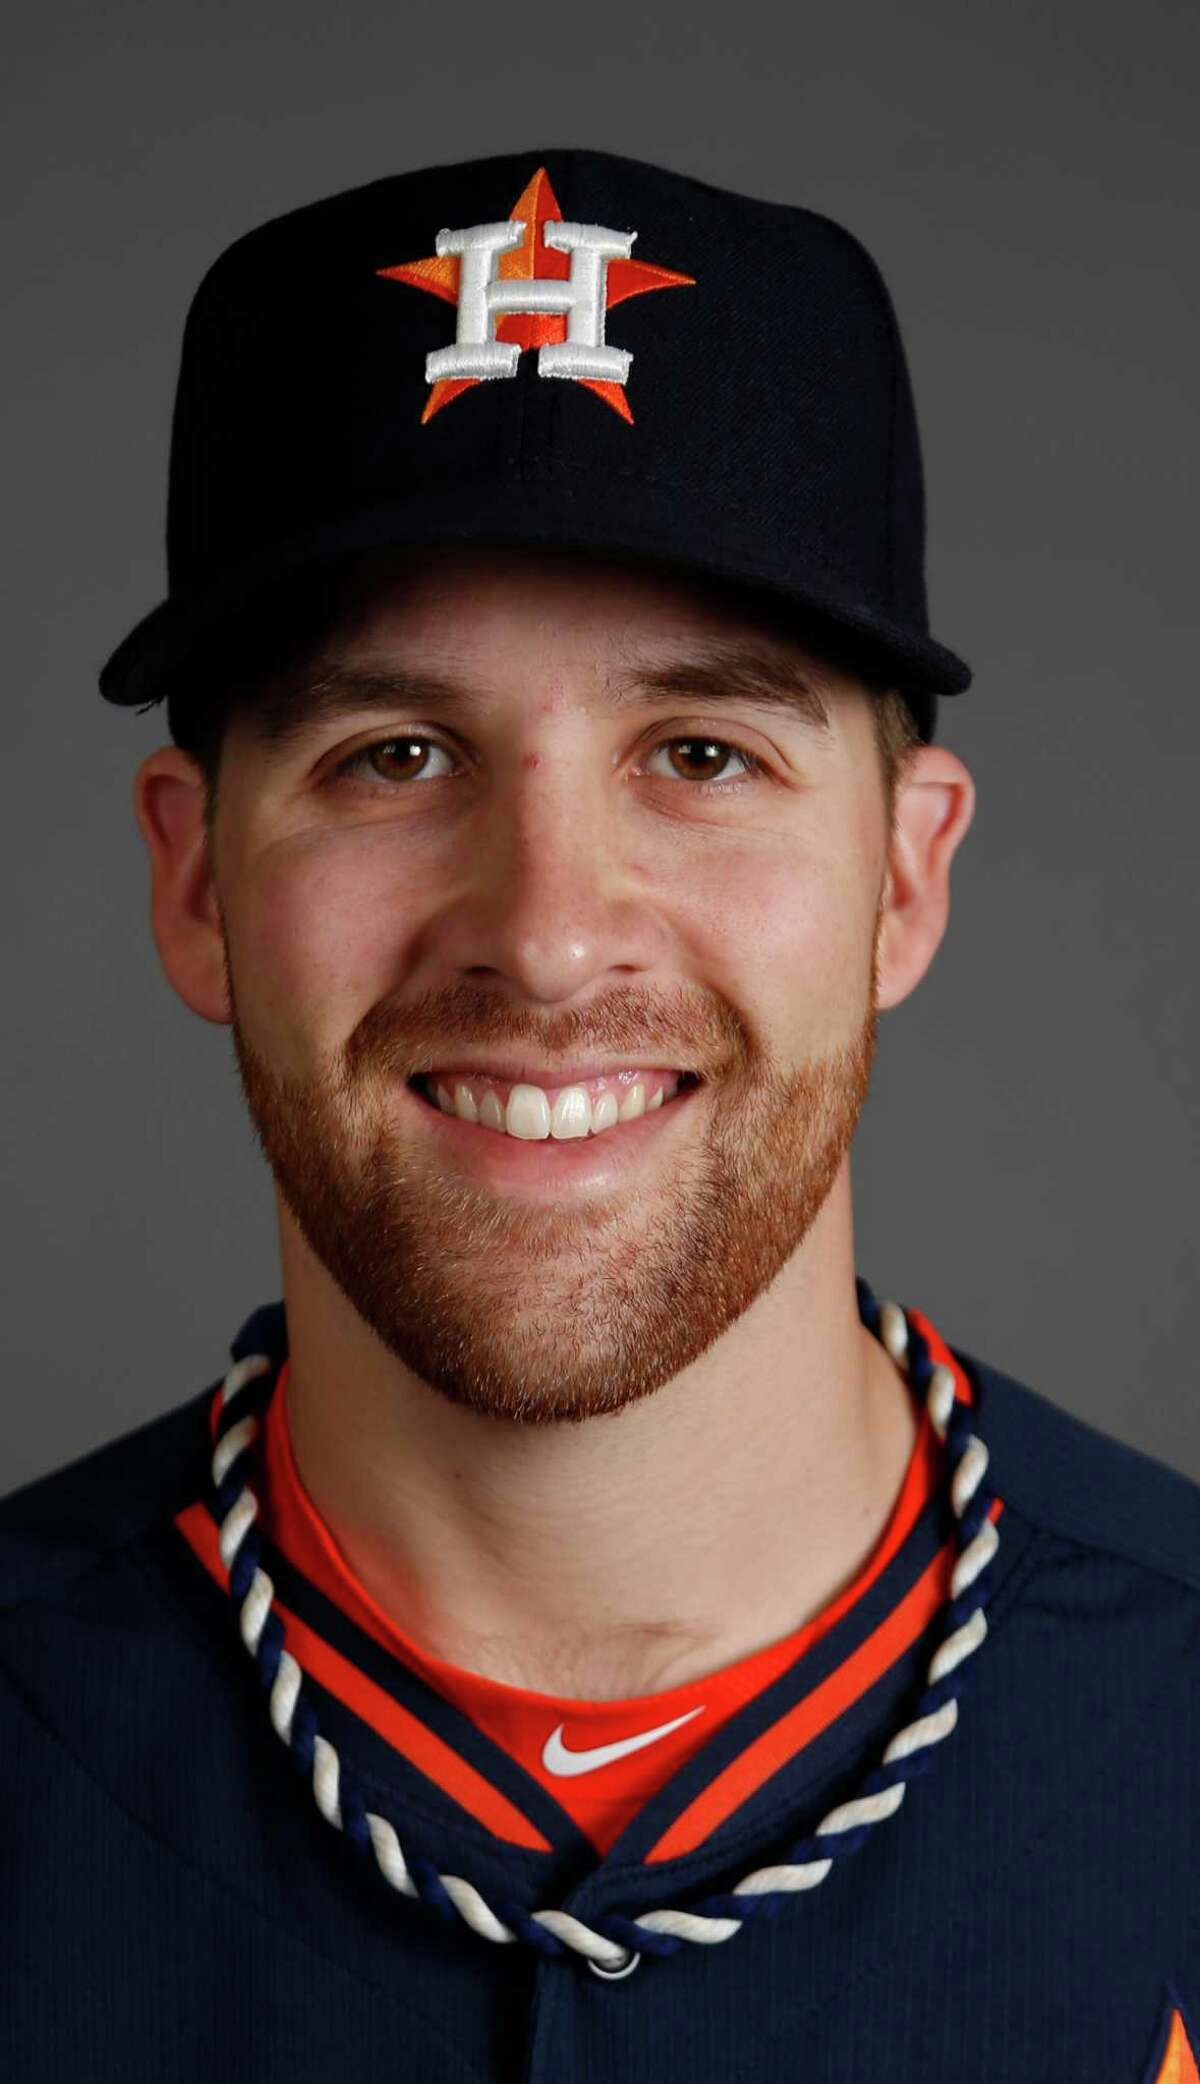 Houston Astros starting pitcher Collin McHugh photographed during Houston Astros spring training at the Osceola County facility, Thursday, Feb. 26, 2015, in Kissimmee. ( Karen Warren / Houston Chronicle )